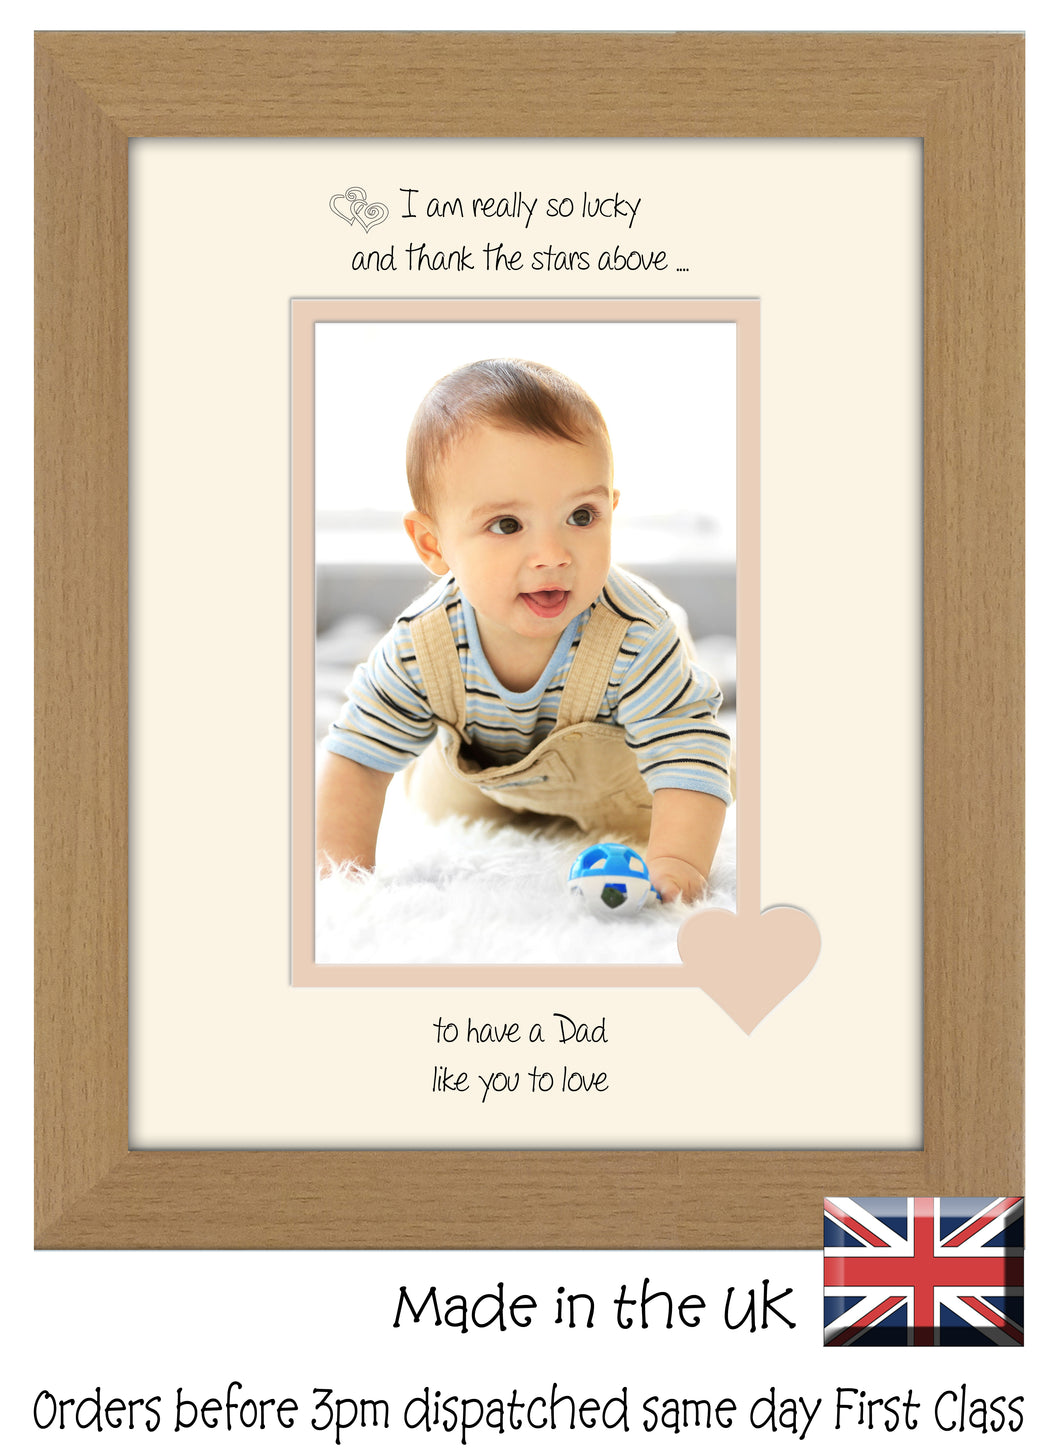 Dad Photo Frame - I Thank the stars Dad Portrait photo frame 6